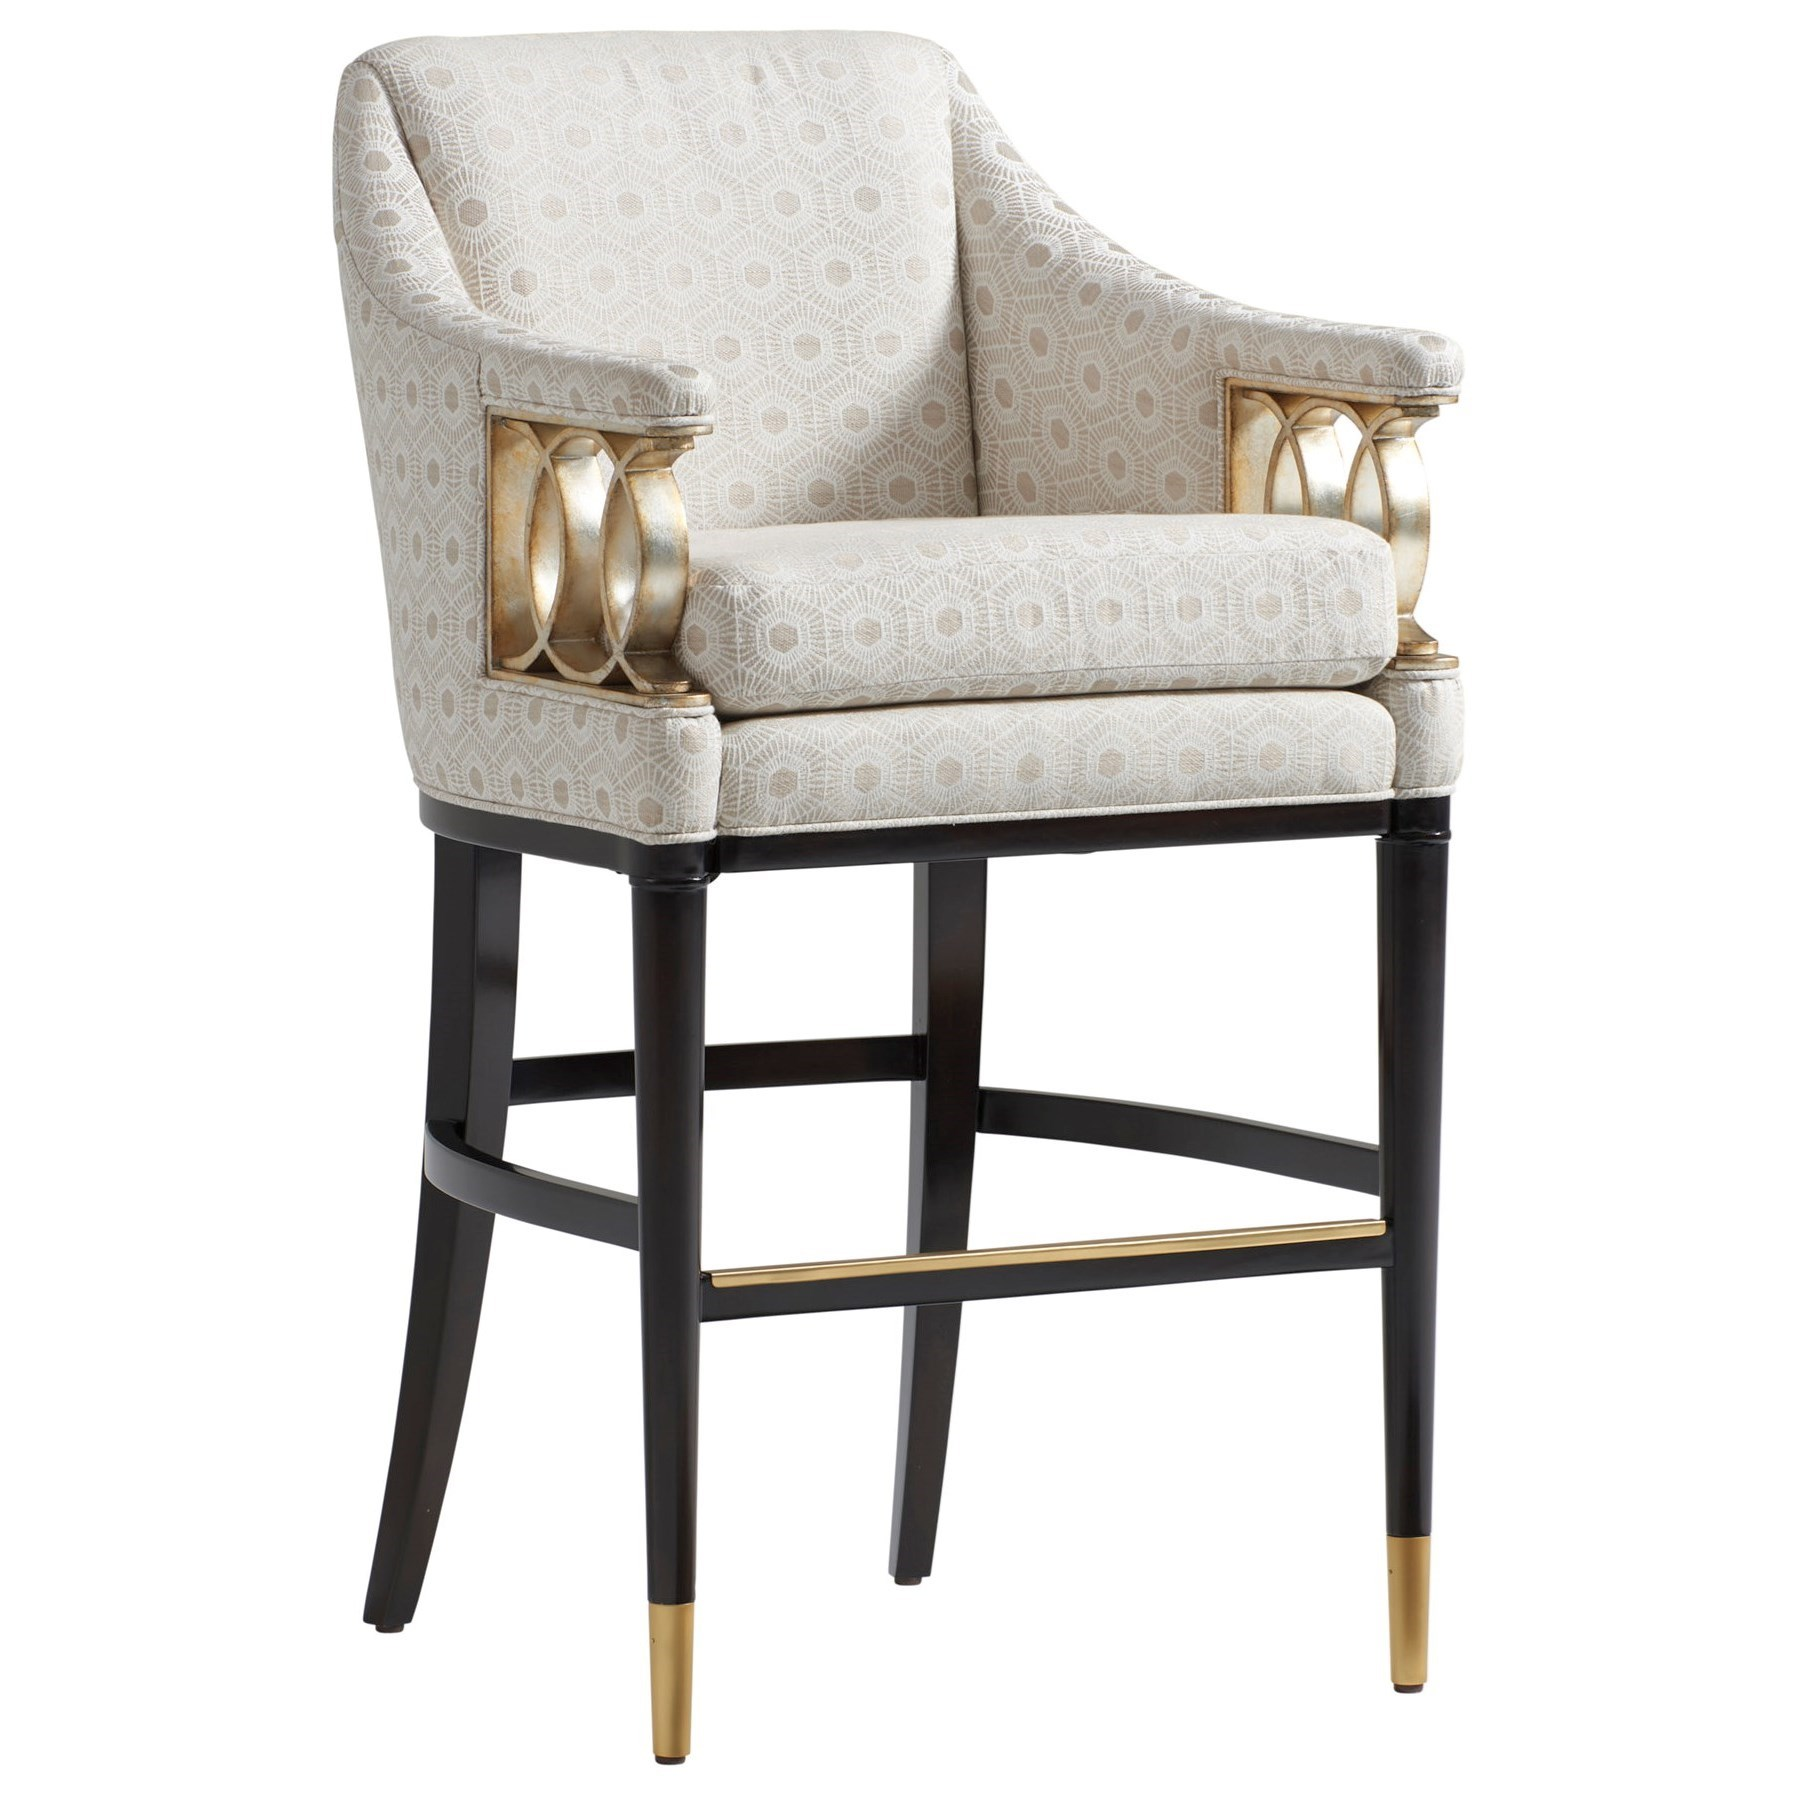 Carlyle Hemsley Upholstered Bar Stool - Custom by Lexington at Johnny Janosik